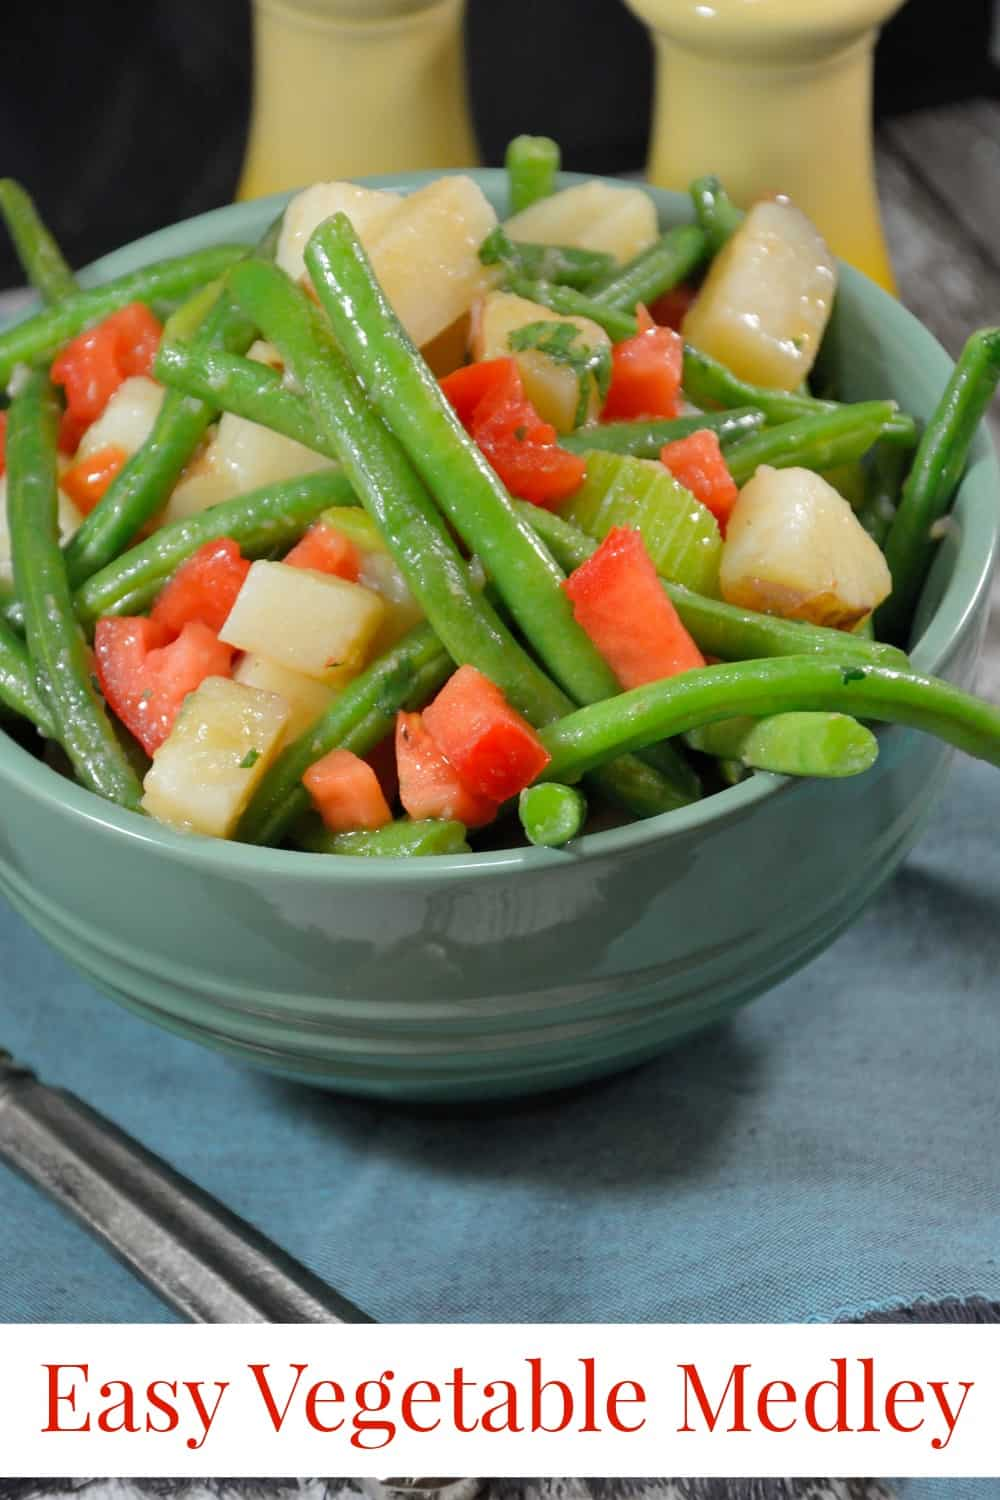 Mixed vegetables green beans tomatoes potatoes and more easy vegetable medley recipe this my go to side dish recipe super easy forumfinder Images